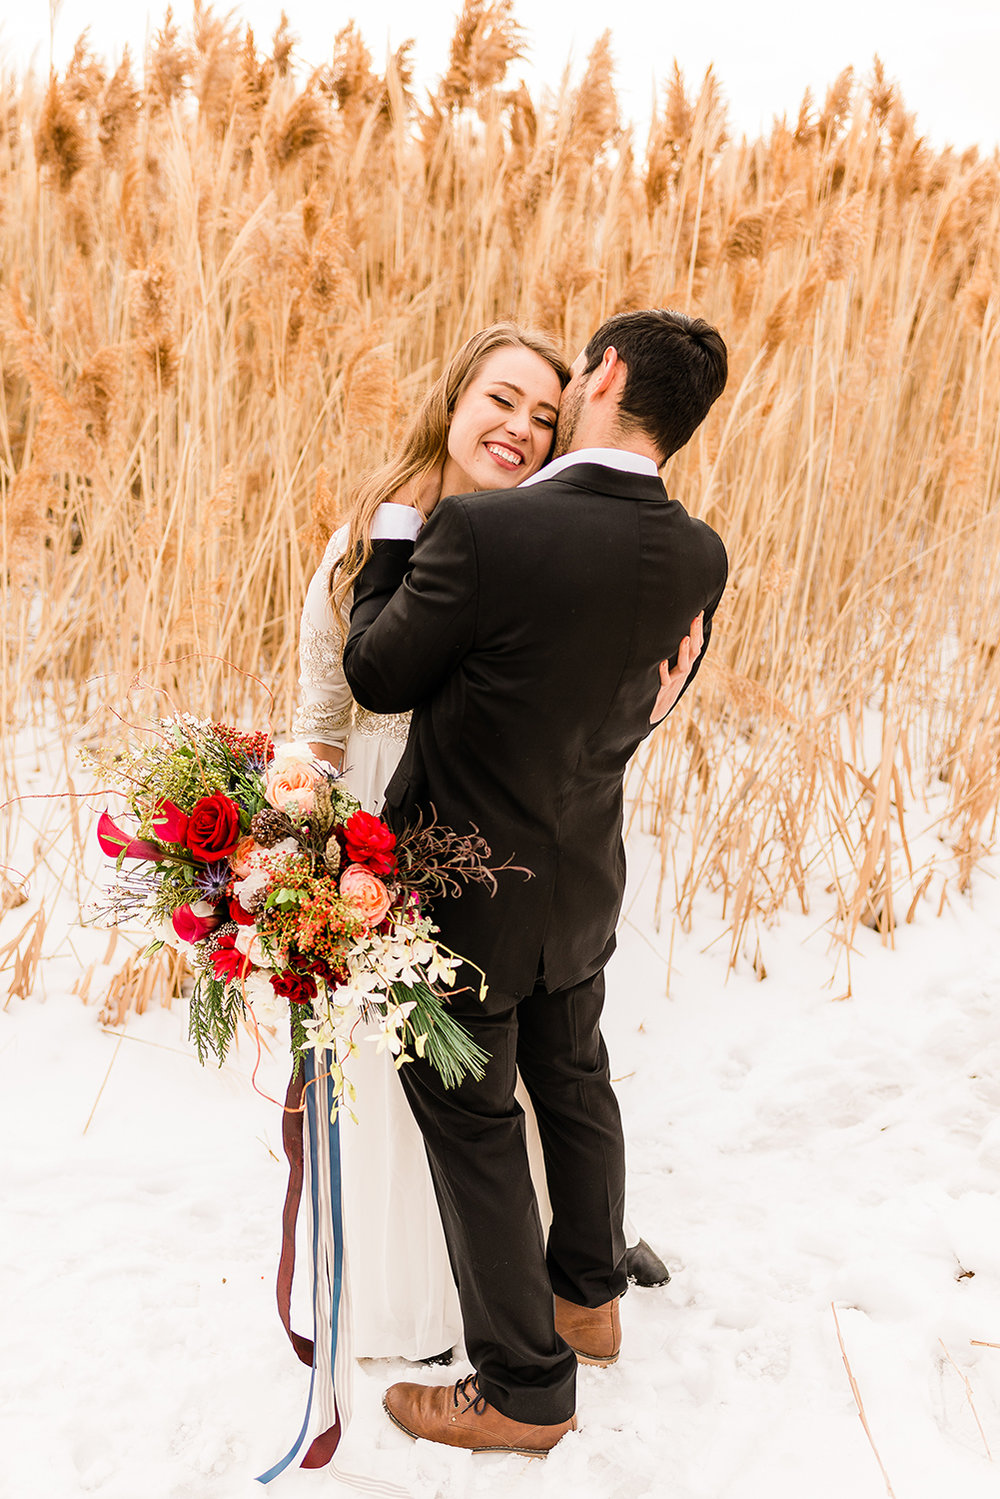 colorado-winter-elopment-colorado-springs-wedding-photographer-5.jpg